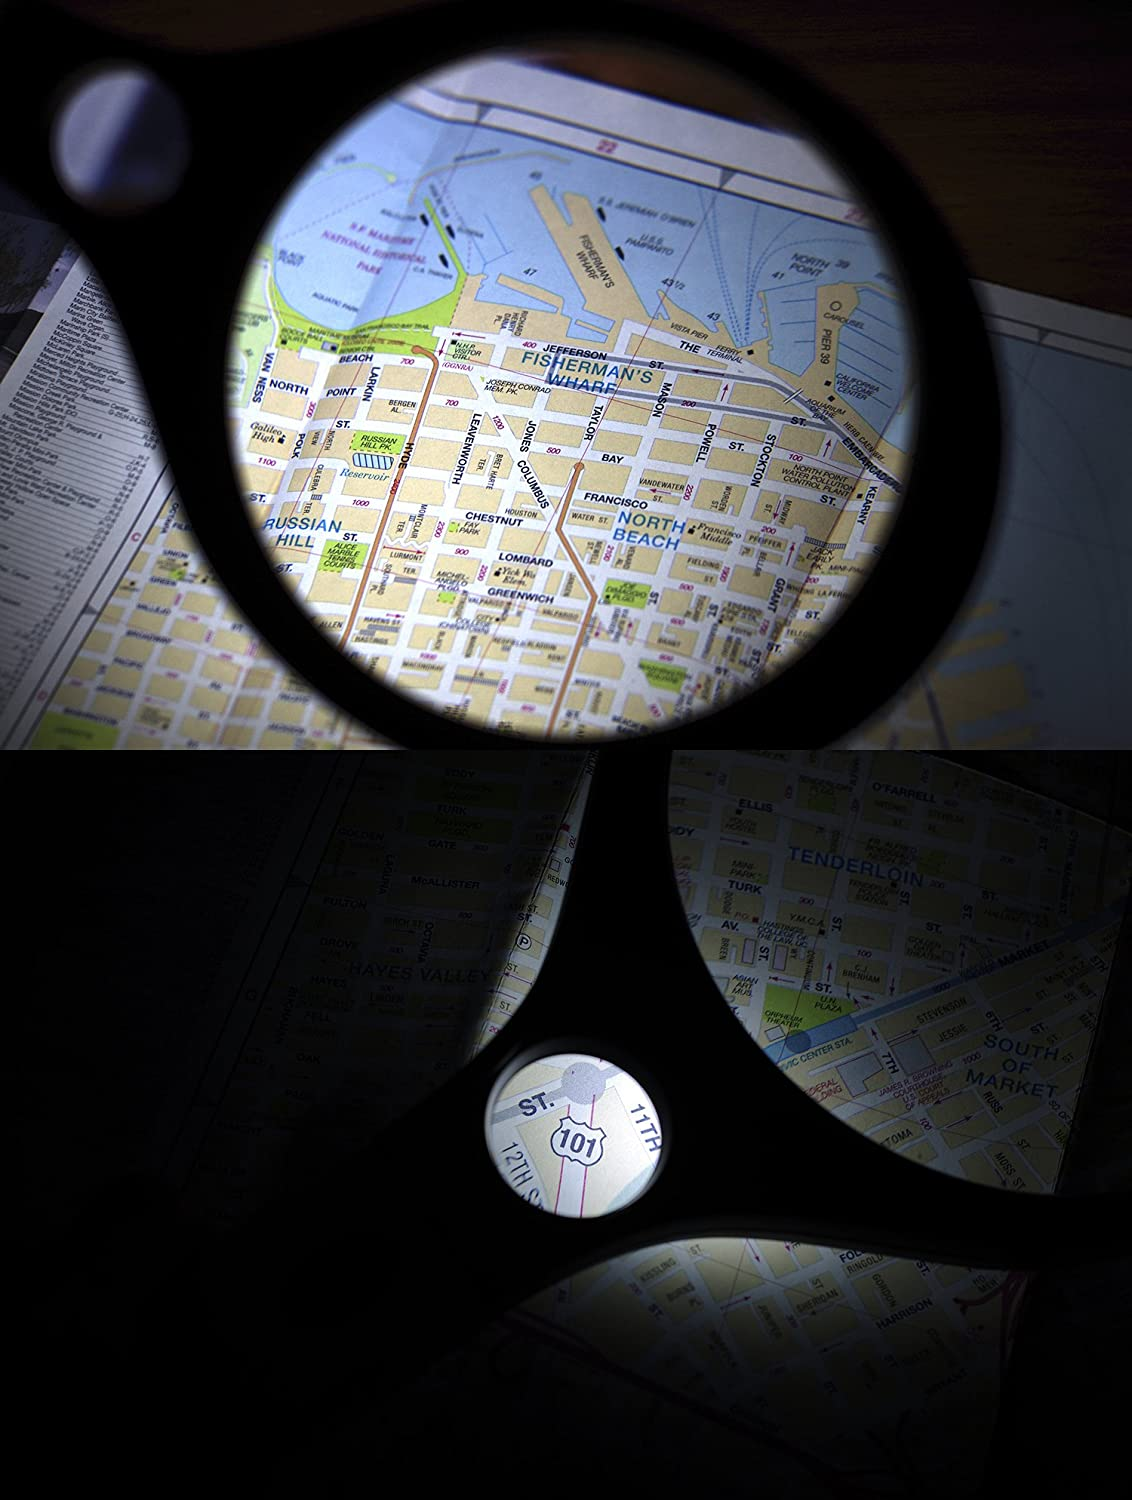 Coins Map IMZ Jumbo Magnifying Glass Insects Currency Detecting Racket Style for Senior Reading Book 3X Lens 10X Zoom 5.5-Inch Extra Large Lighted Magnifier Inspection